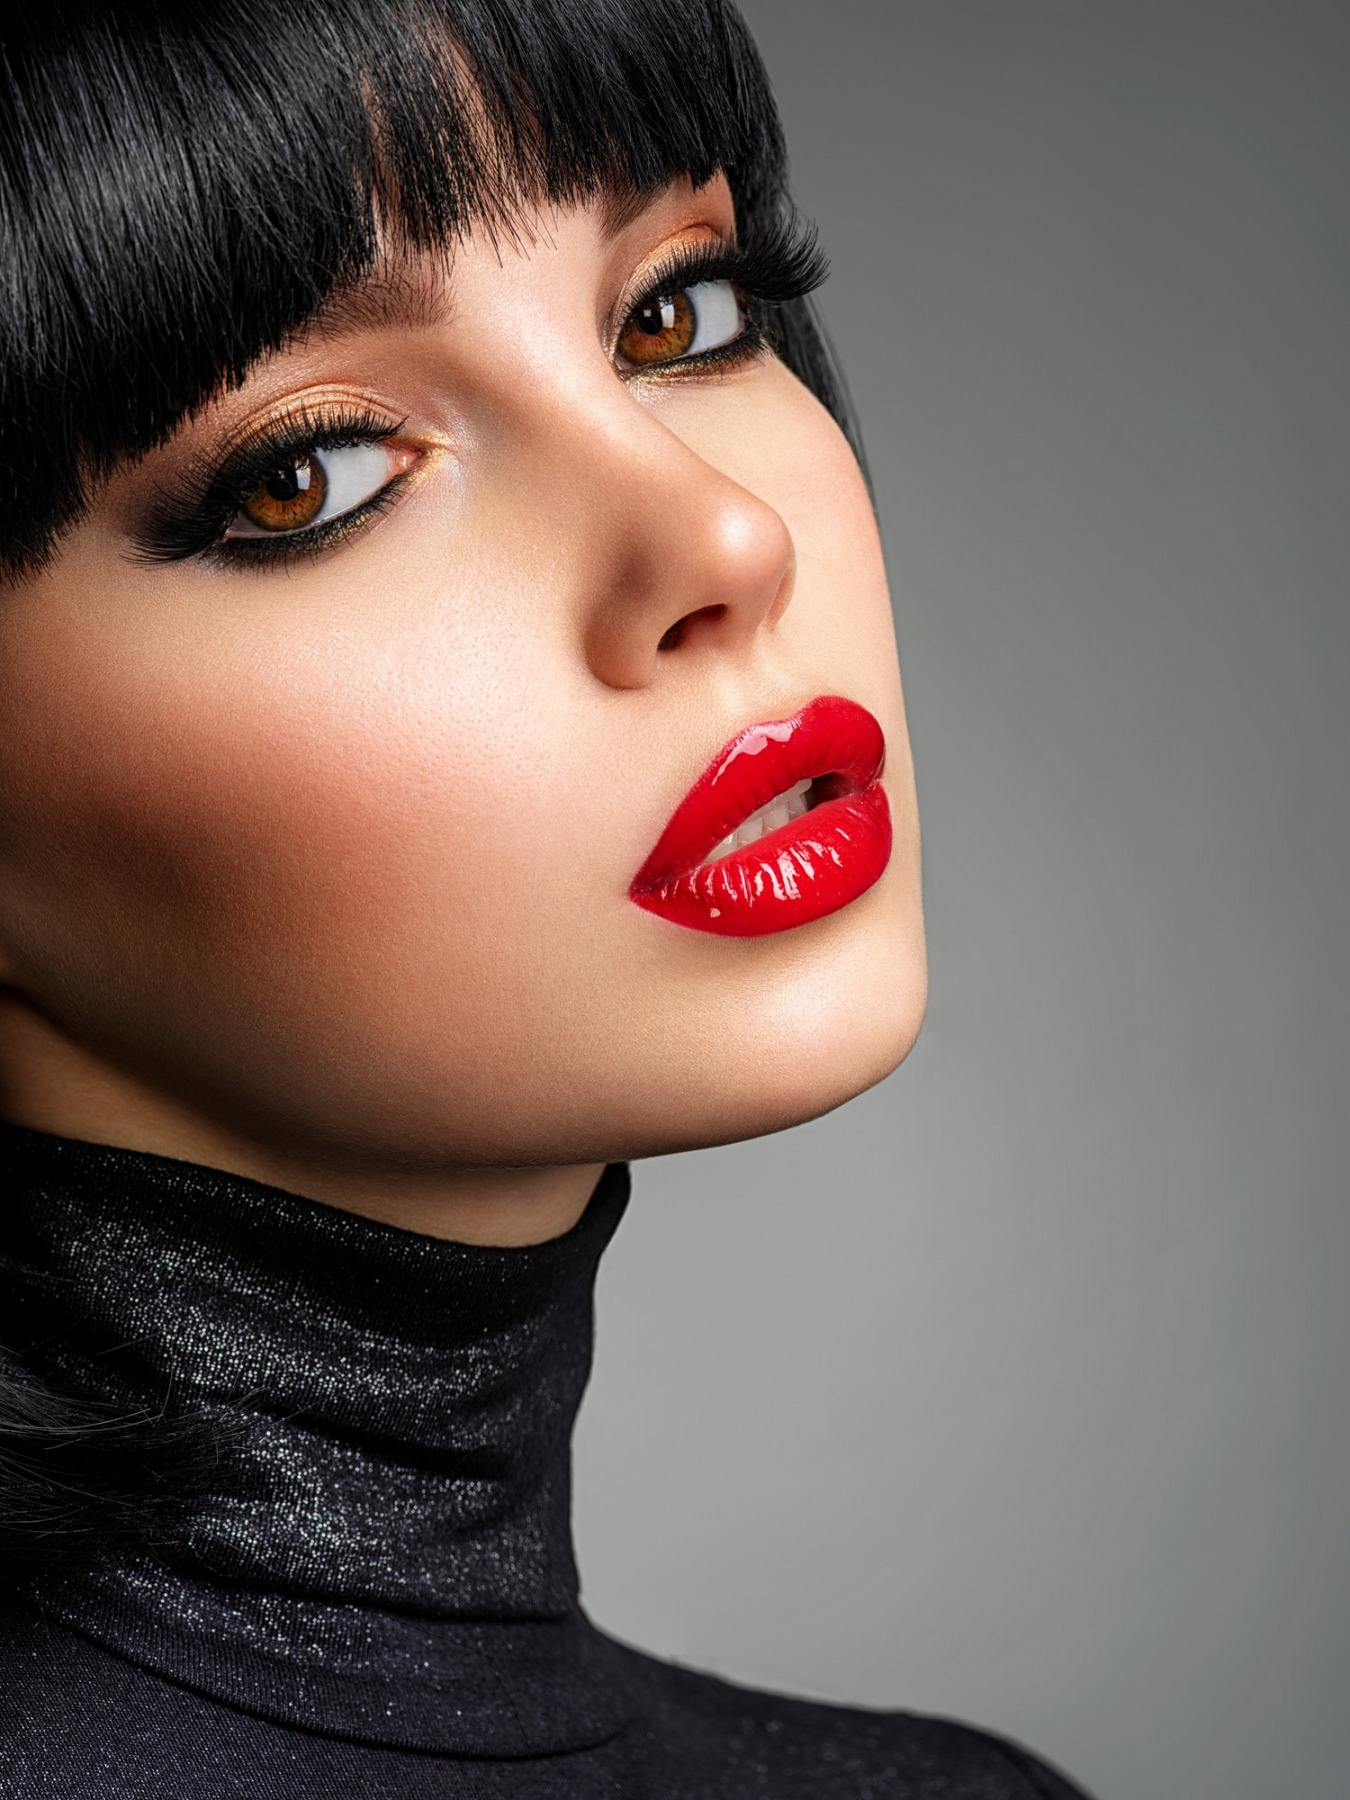 Beautiful brunette girl with red lips and black bob hairstyle.